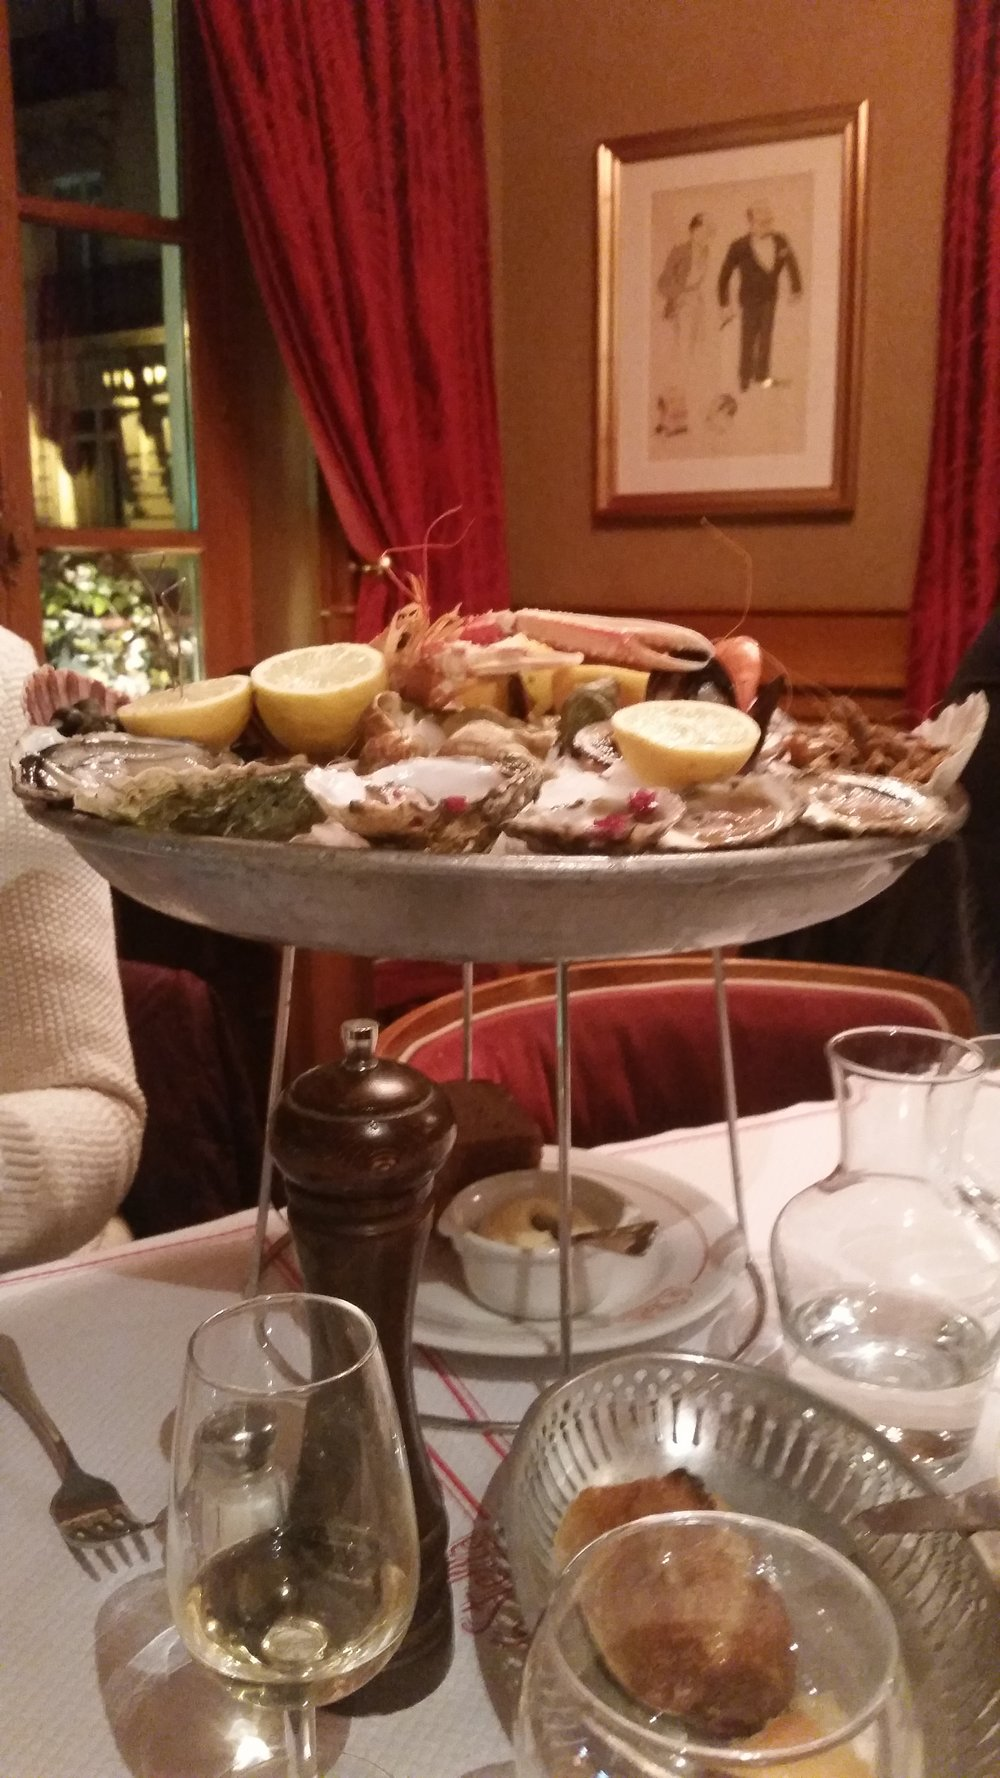 Seafood platter at Le Stella brasserie.